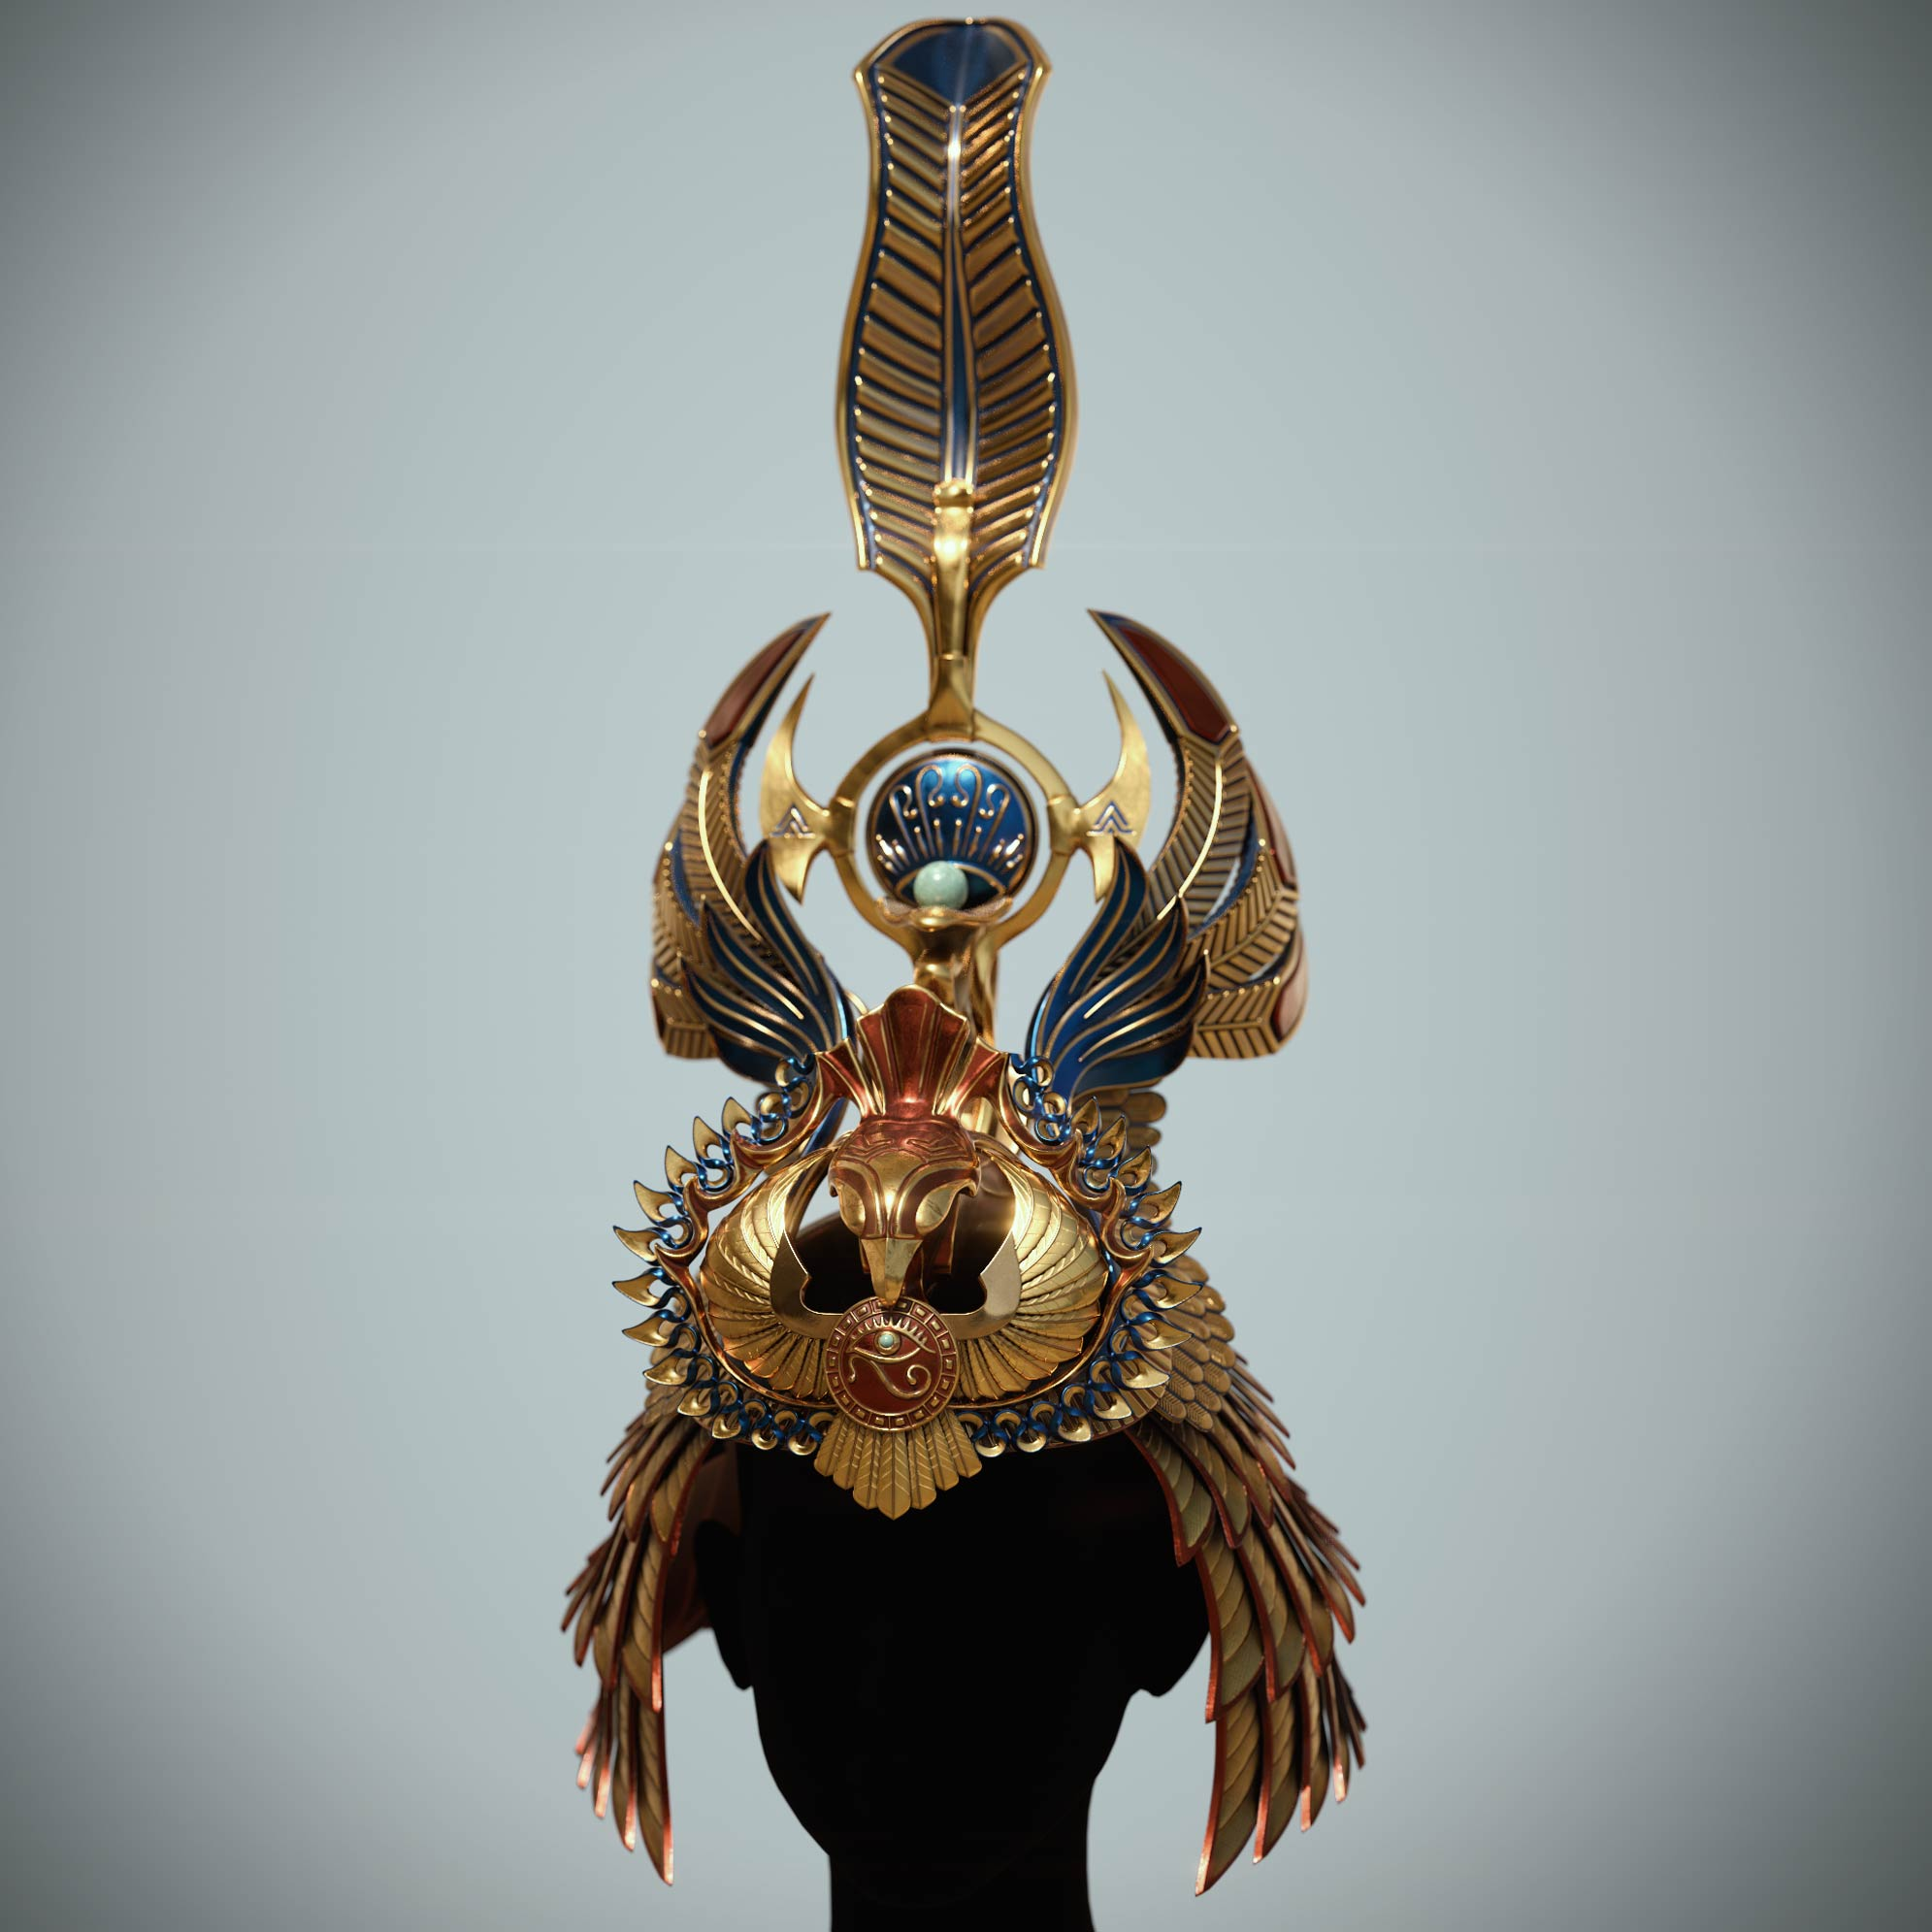 cleopatra_crown_zbrush_design1 Egyptian queen crown